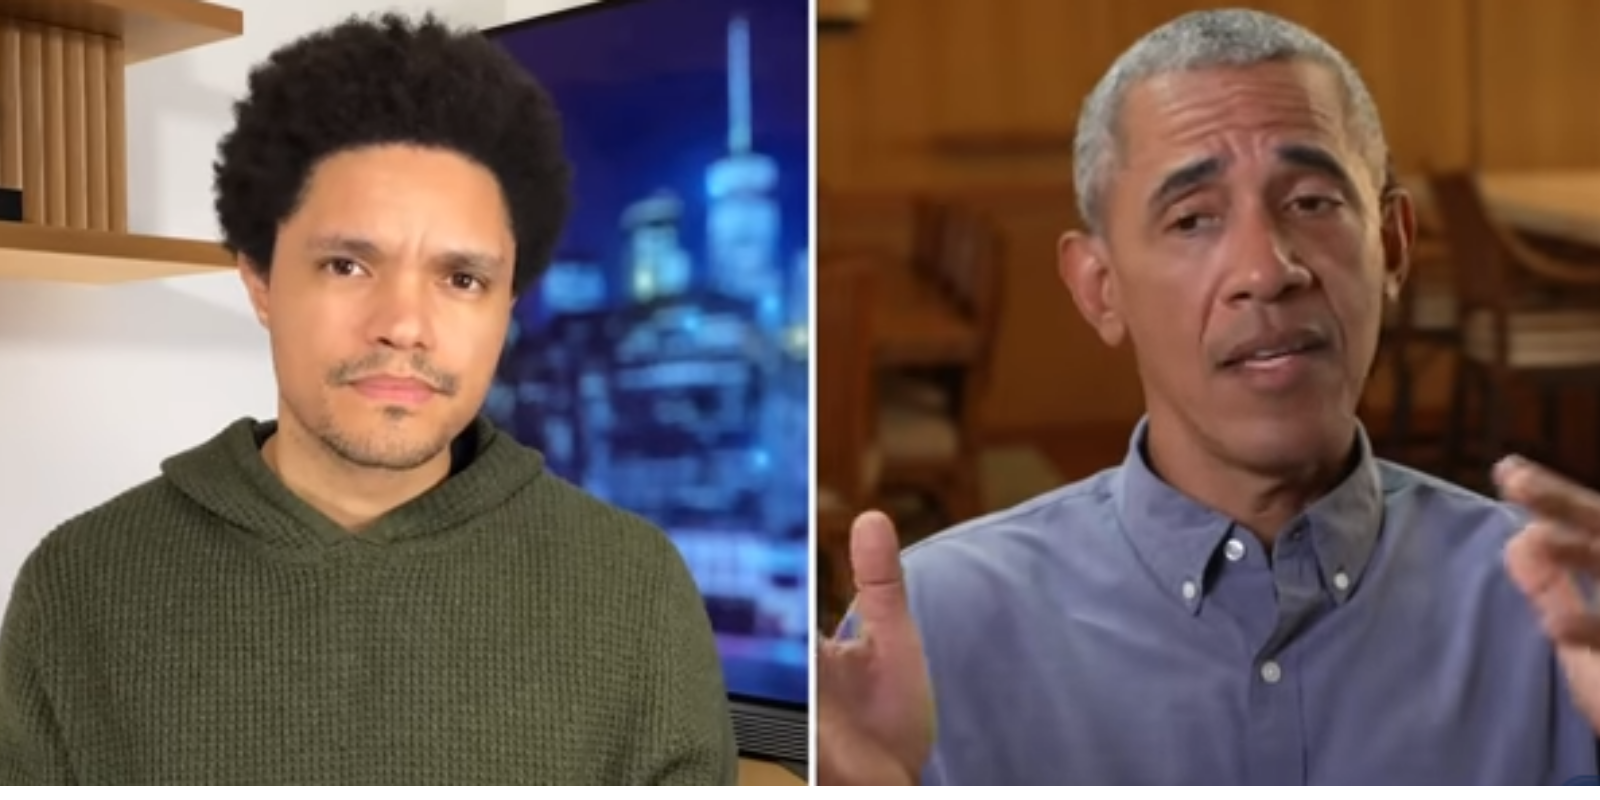 WATCH: Obama praises BLM, 'Defund the Police' activists as 'courageous'